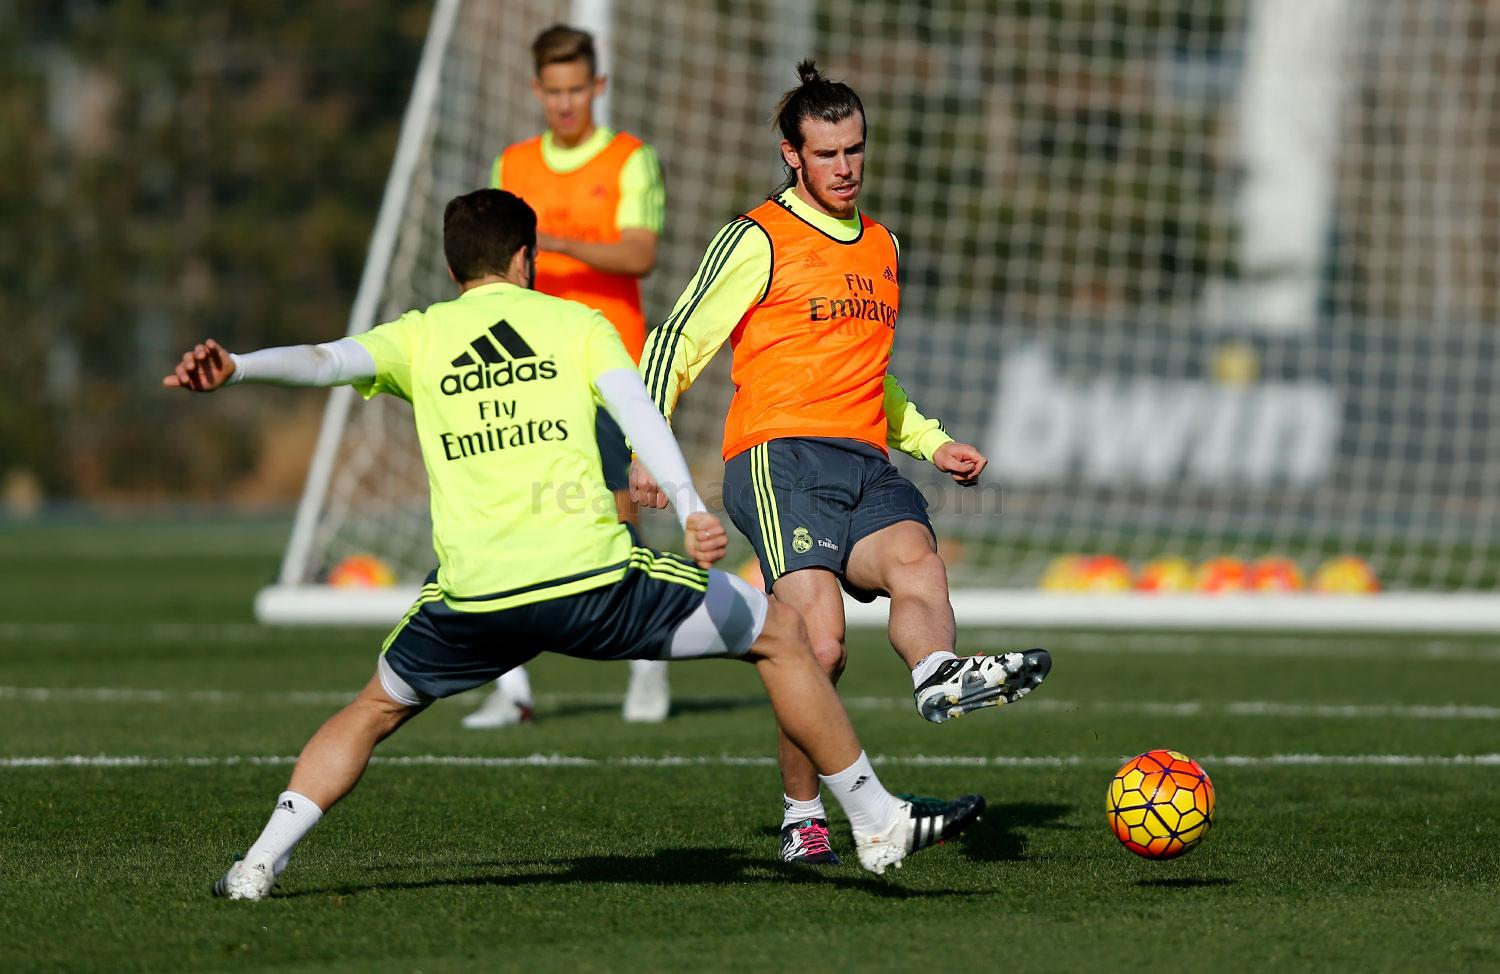 Real Madrid - Entrenamiento del Real Madrid - 16-12-2015